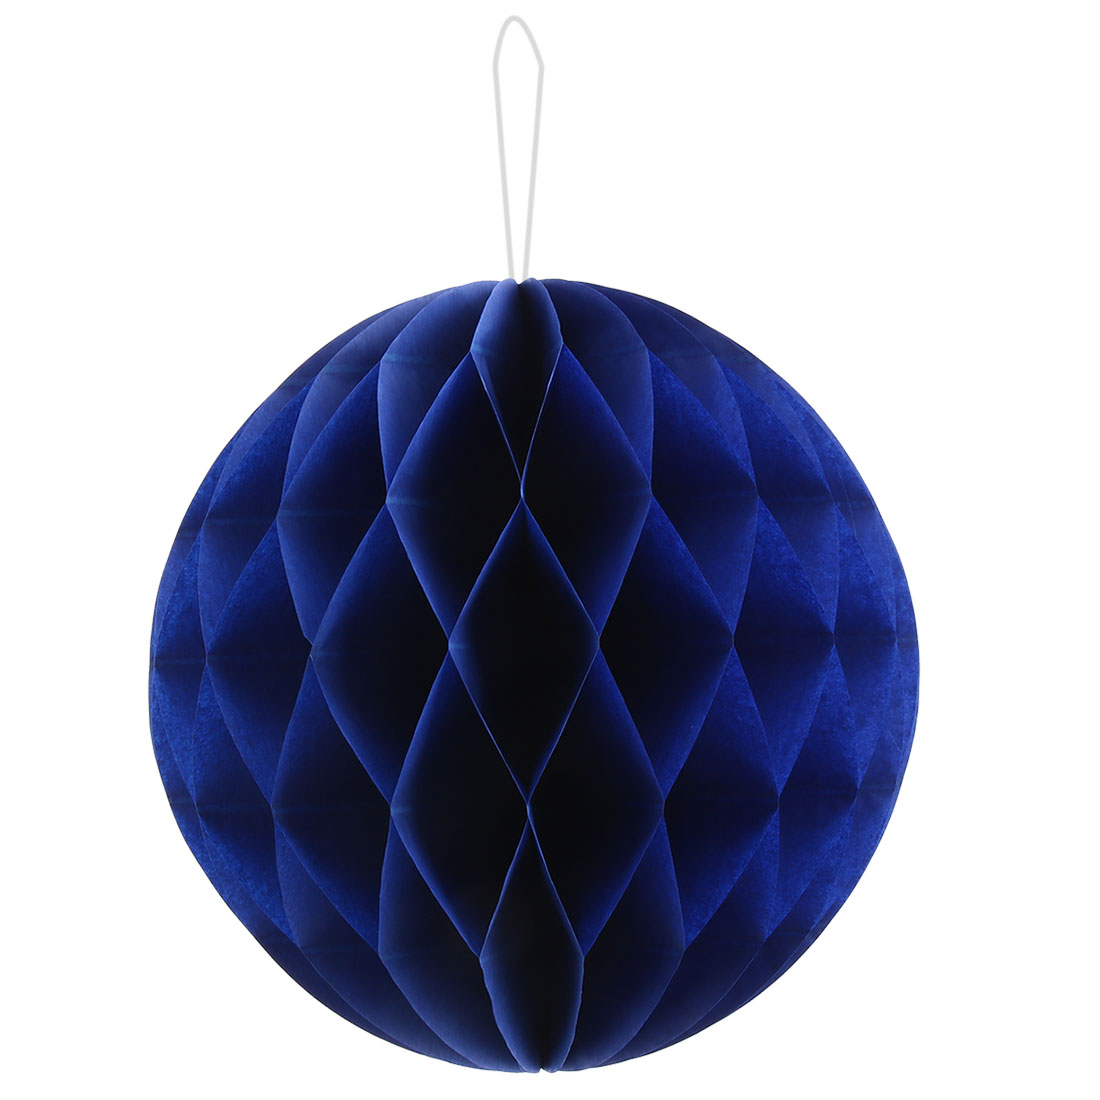 Birthday Party Paper DIY String Hanging Lantern Decor Honeycomb Ball Royal Blue 10 Inch Dia